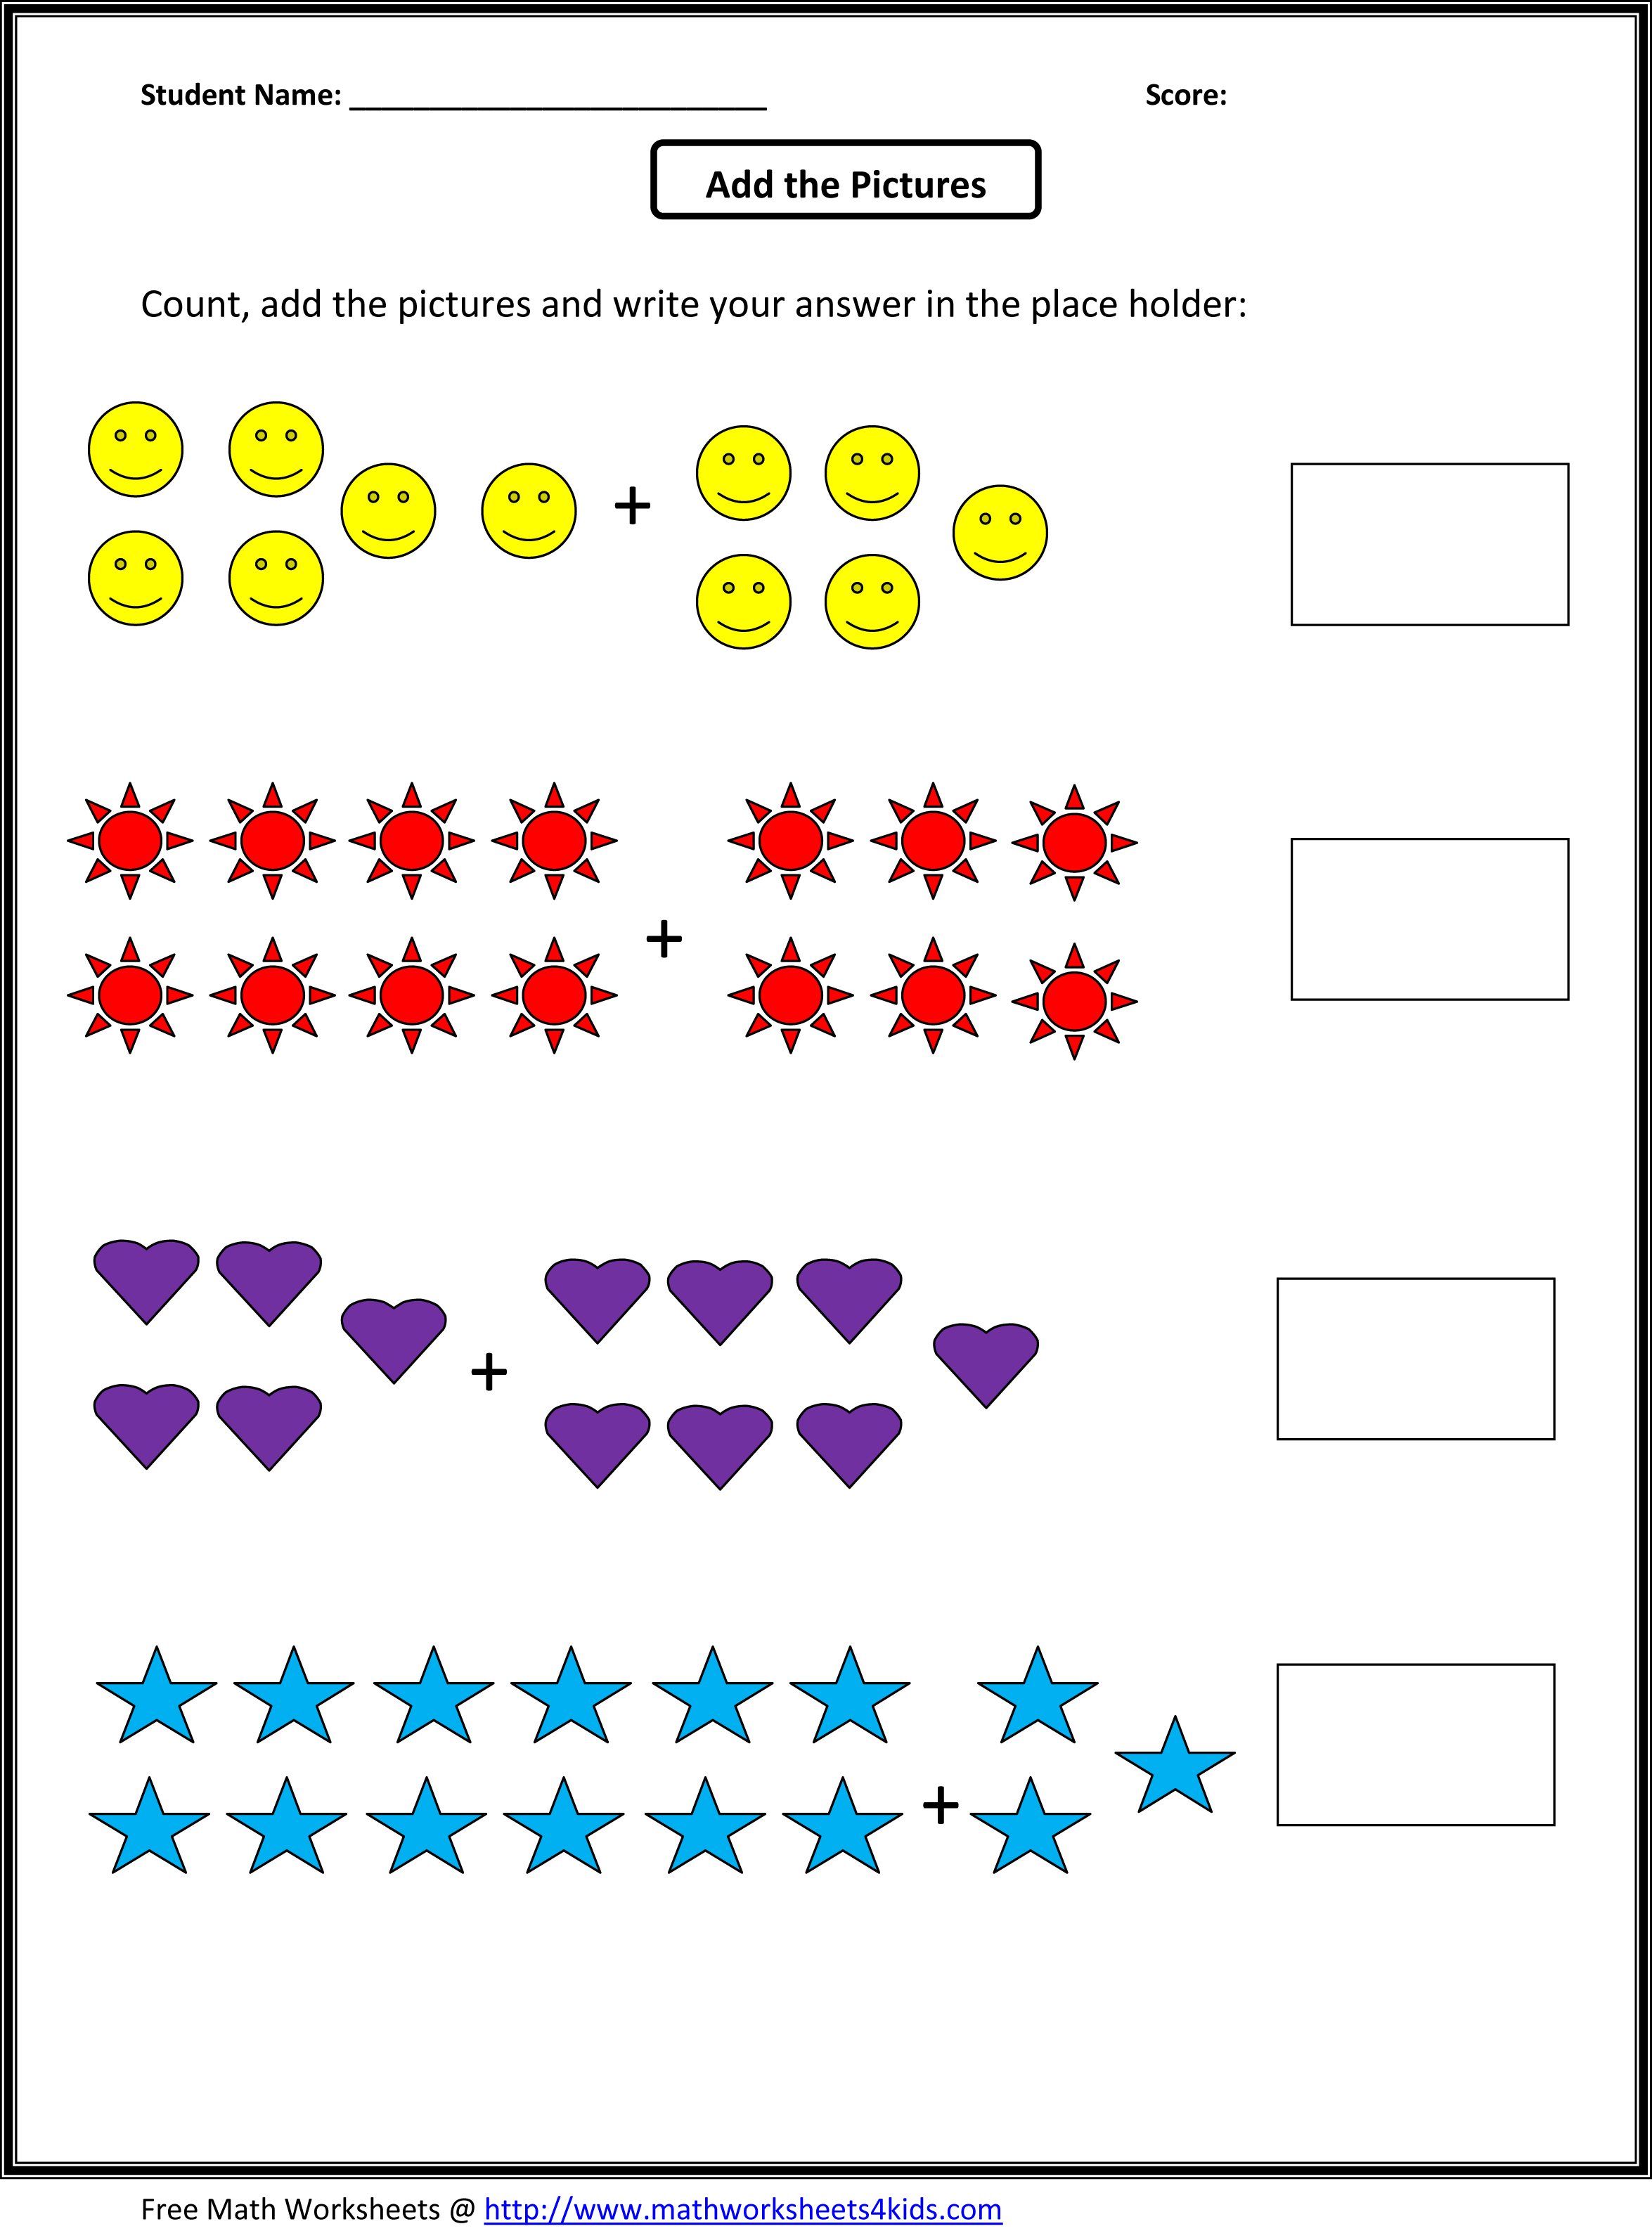 Weirdmailus  Pleasing Grade  Maths Worksheet  Reocurent With Marvelous Math Worksheets For St Grade Free  Reocurent With Beauteous Coordinate Plotting Worksheet Also Diphthong Worksheet In Addition Map Of Canada Worksheet And Th Grade Maths Worksheets As Well As Writing Compound Sentences Worksheets Additionally Complex Sentence Structure Worksheets From Reocurentcom With Weirdmailus  Marvelous Grade  Maths Worksheet  Reocurent With Beauteous Math Worksheets For St Grade Free  Reocurent And Pleasing Coordinate Plotting Worksheet Also Diphthong Worksheet In Addition Map Of Canada Worksheet From Reocurentcom